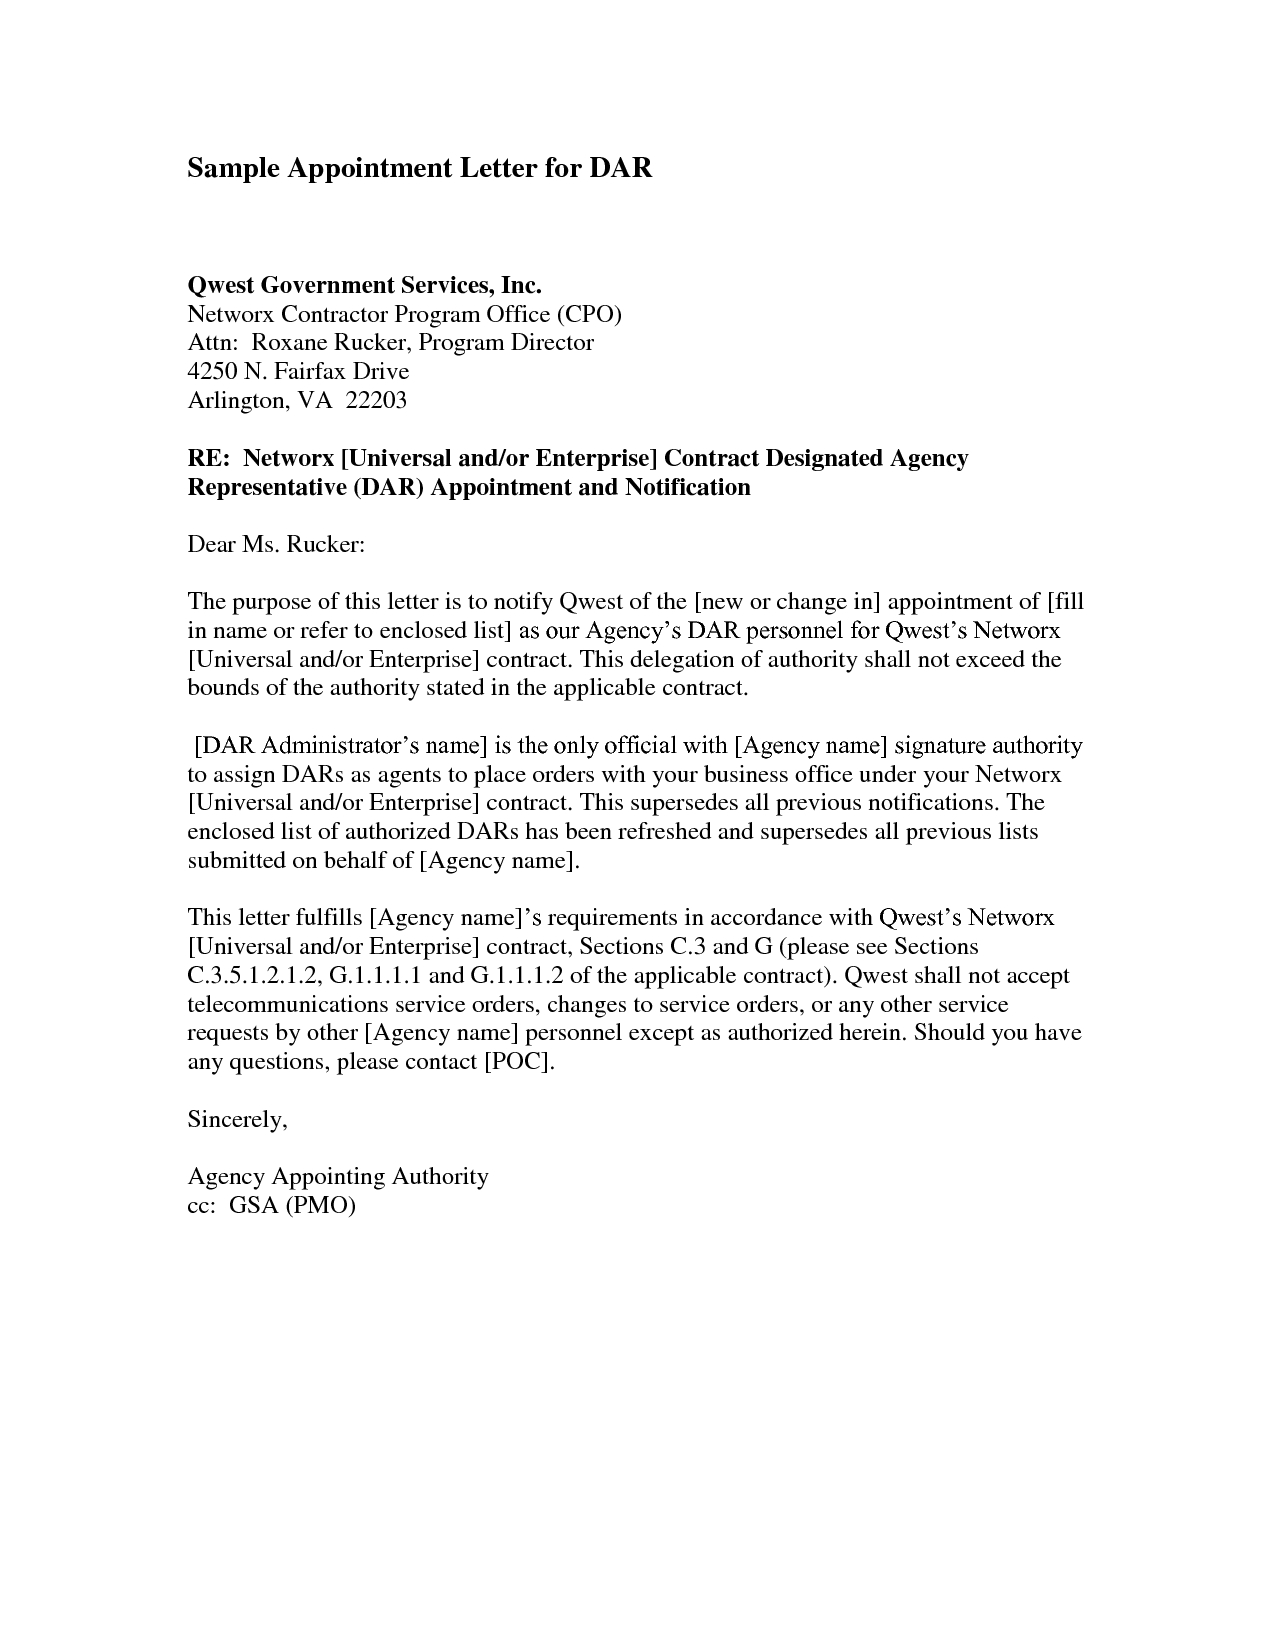 Offer Letter Template Google Docs - Trustee Appointment Letter Director Trustee is Appointed or